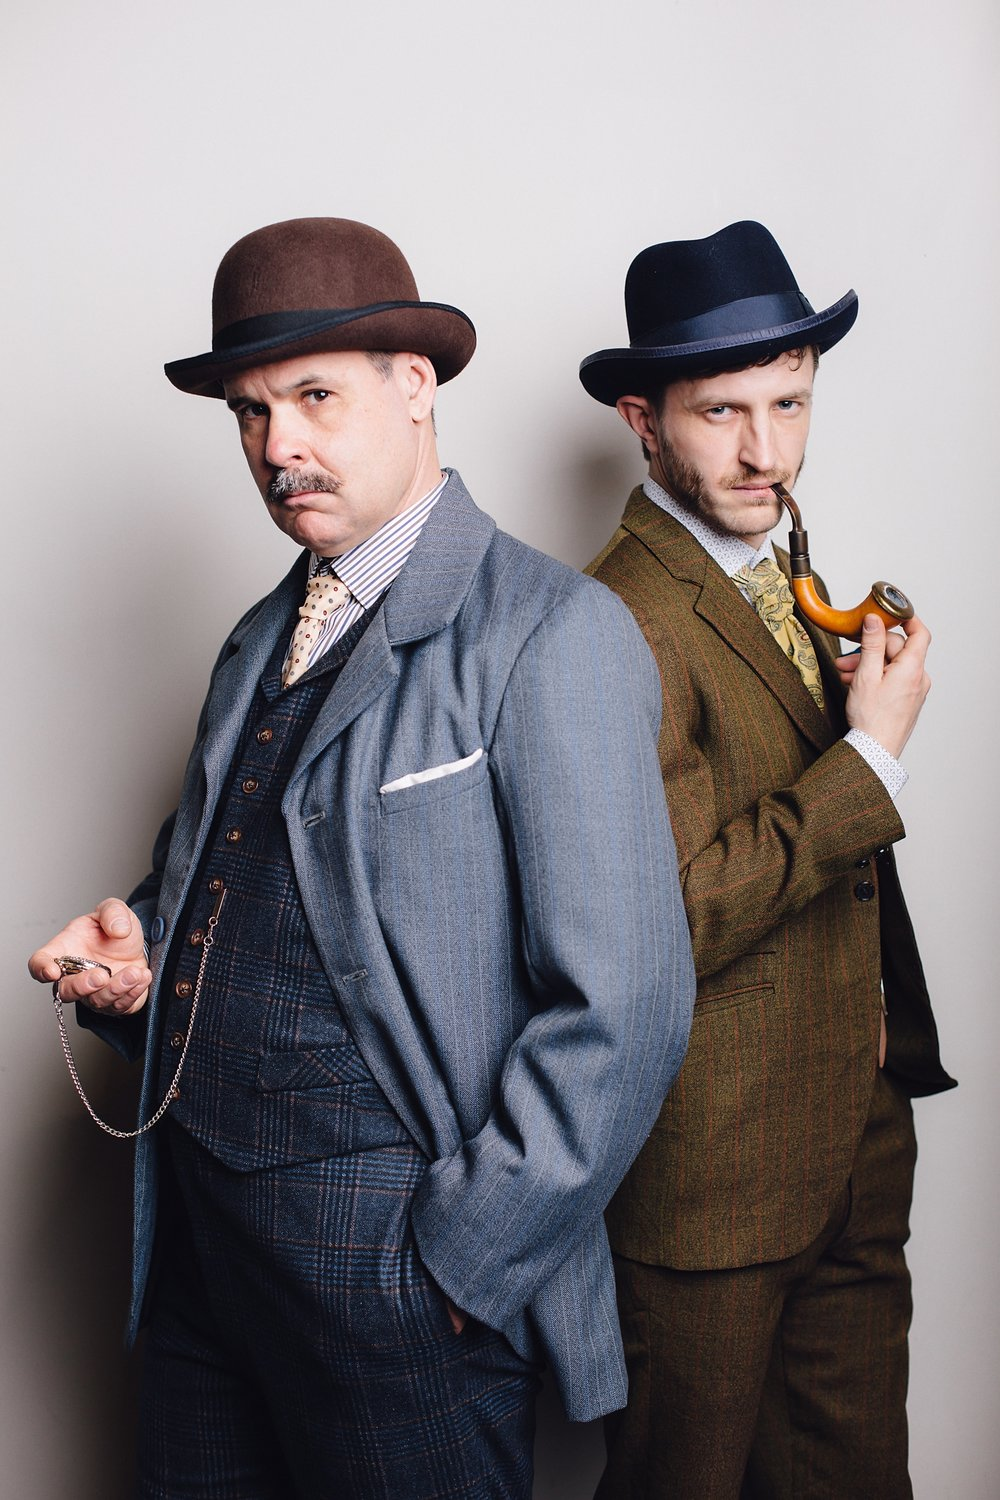 Curt McKinstry as Watson (left) and Braden Griffiths as Holmes (right), costumes designed by Deitra Kalyn, photography by diane+mike photography